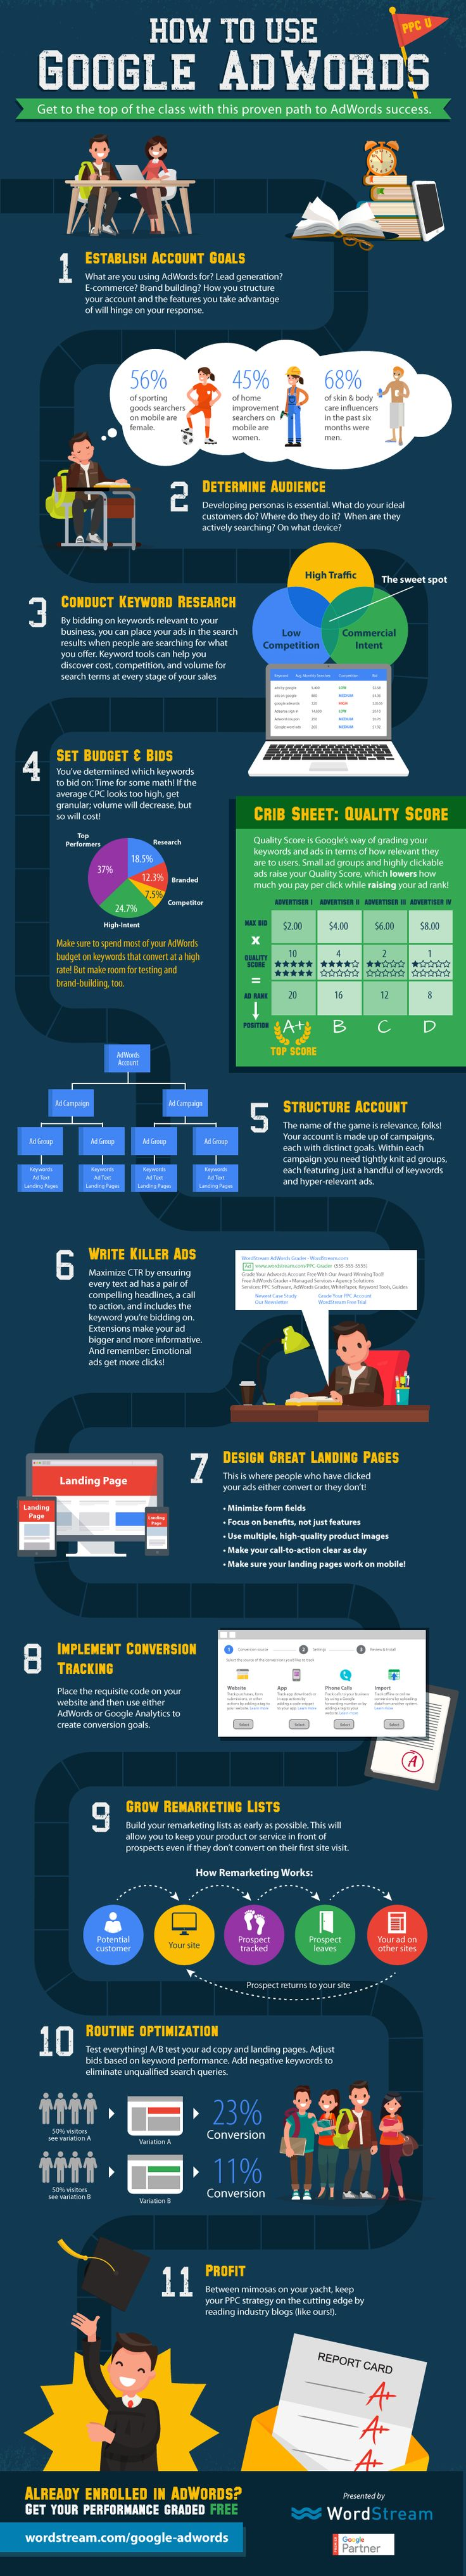 How to Use Google AdWords [Infographic]